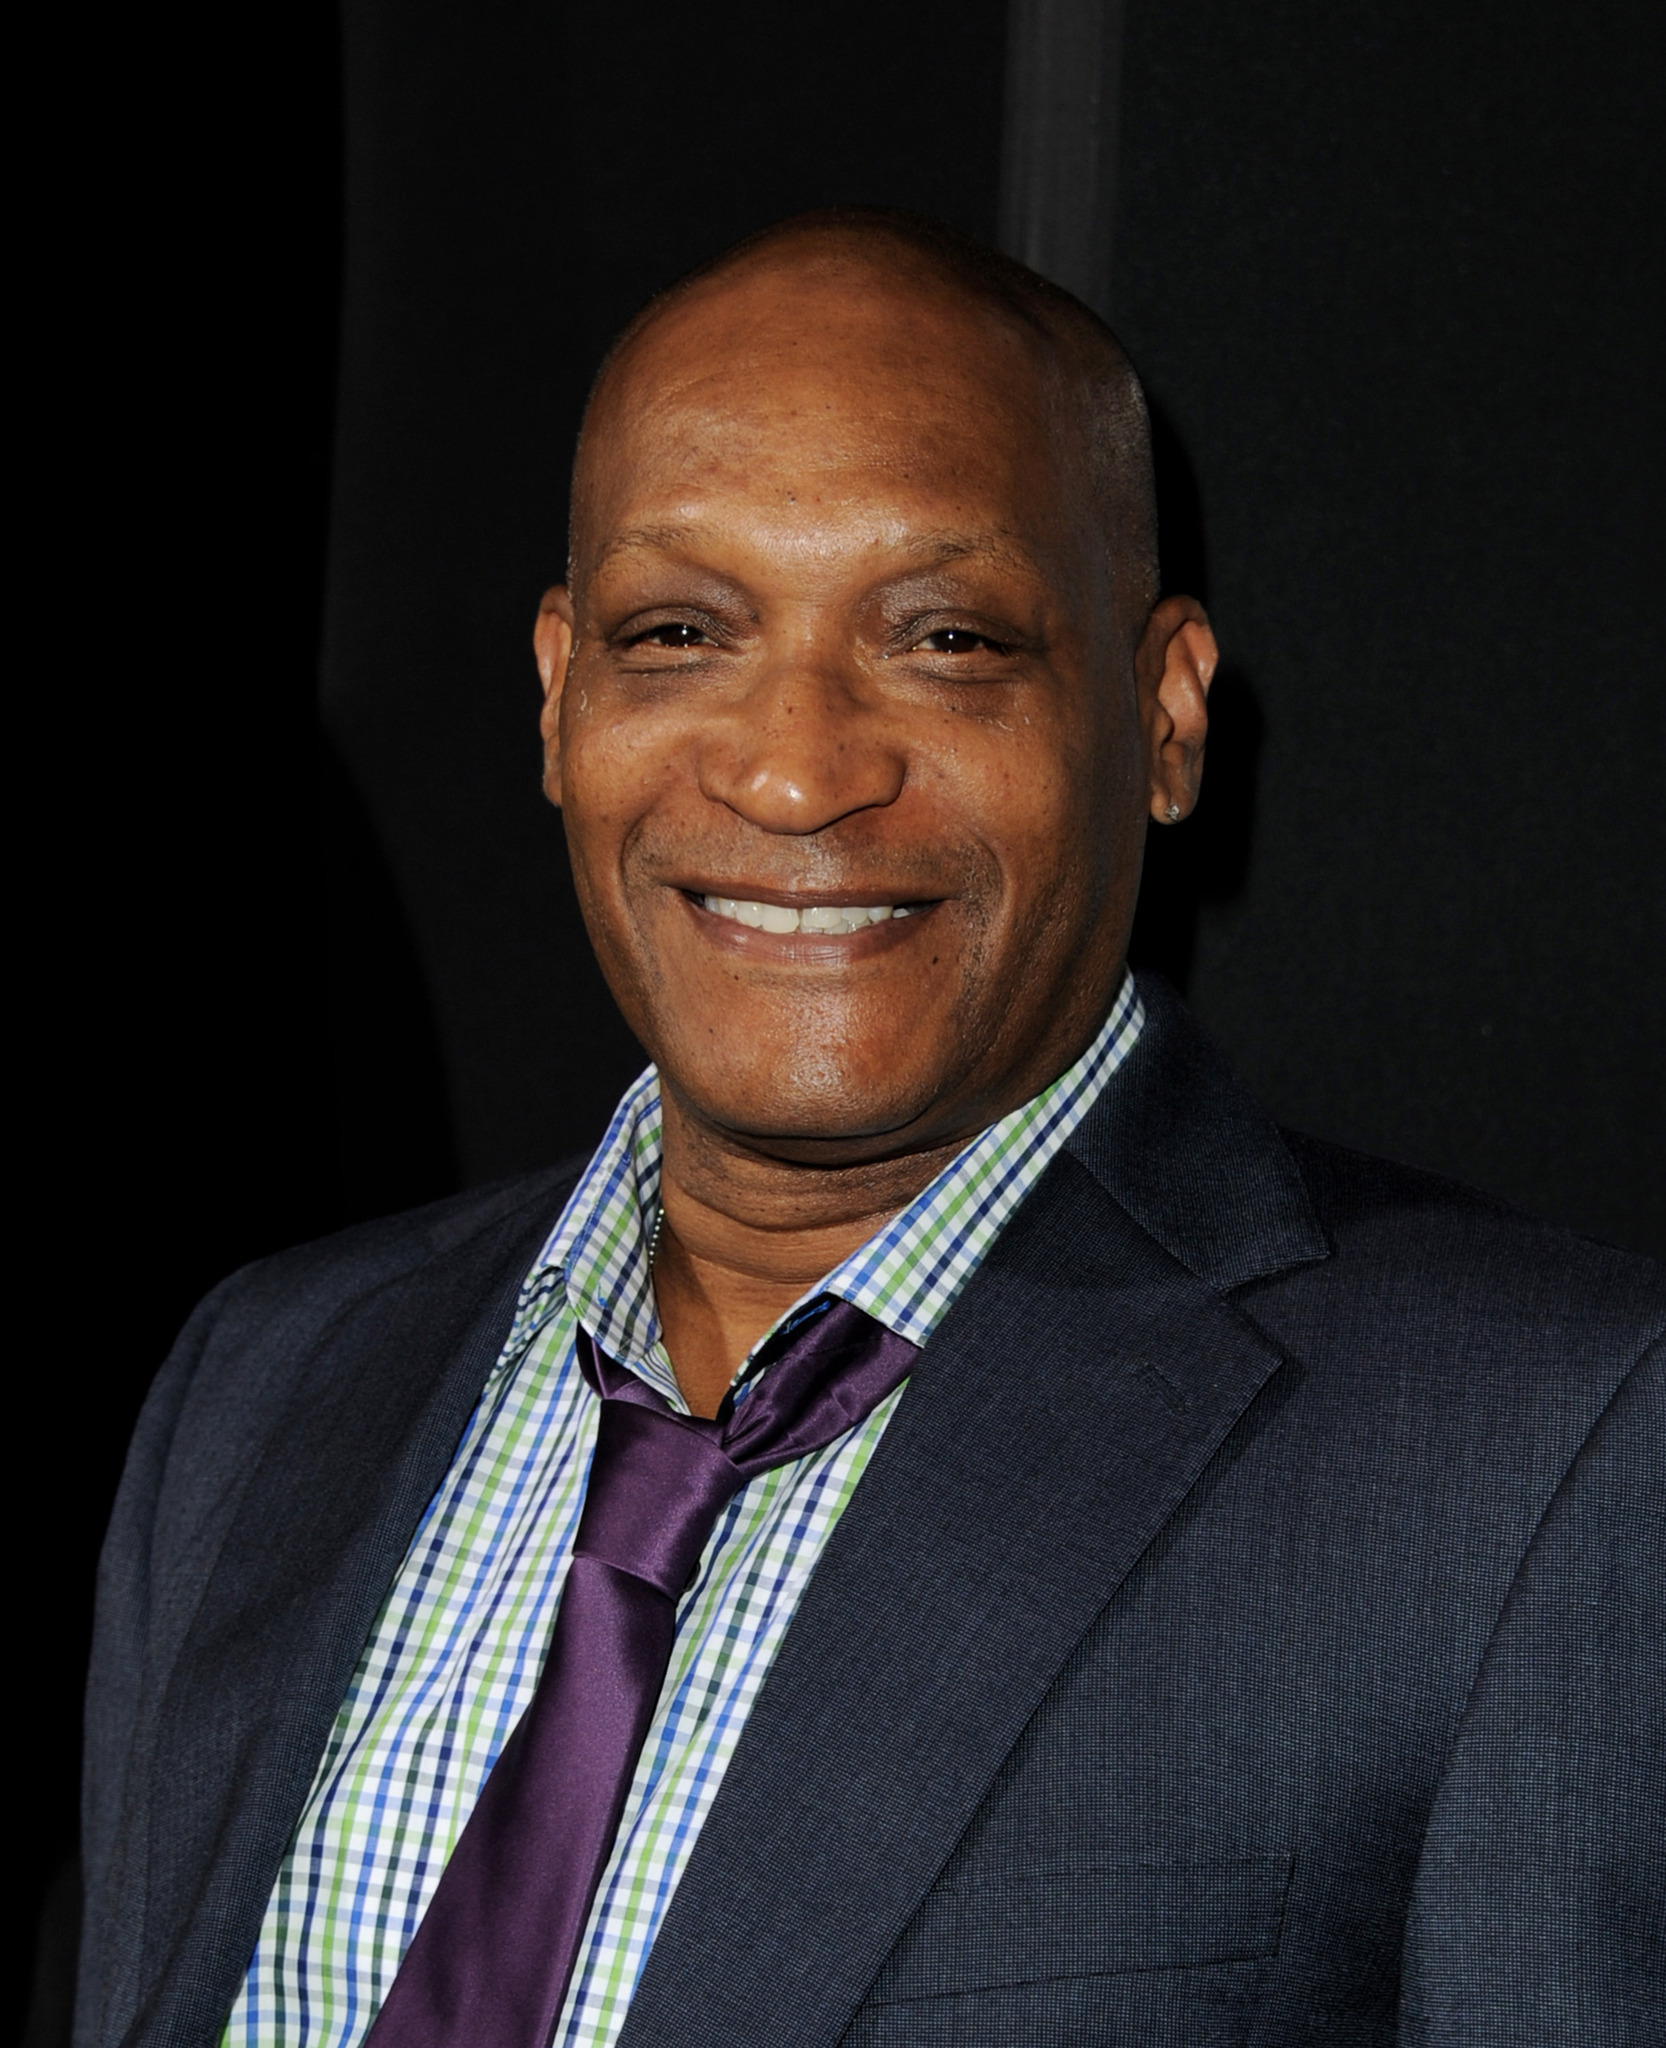 tony todd the rocktony todd imdb, tony todd candyman, tony todd star trek, tony todd voice, tony todd height, tony todd wife, tony todd twitter, tony todd actor, tony todd the crow, tony todd charlie sheen, tony todd the rock, tony todd movies list, tony todd age, tony todd x files, tony todd 2015, tony todd smallville, tony todd transformers, tony todd interview, tony todd married, tony todd bees